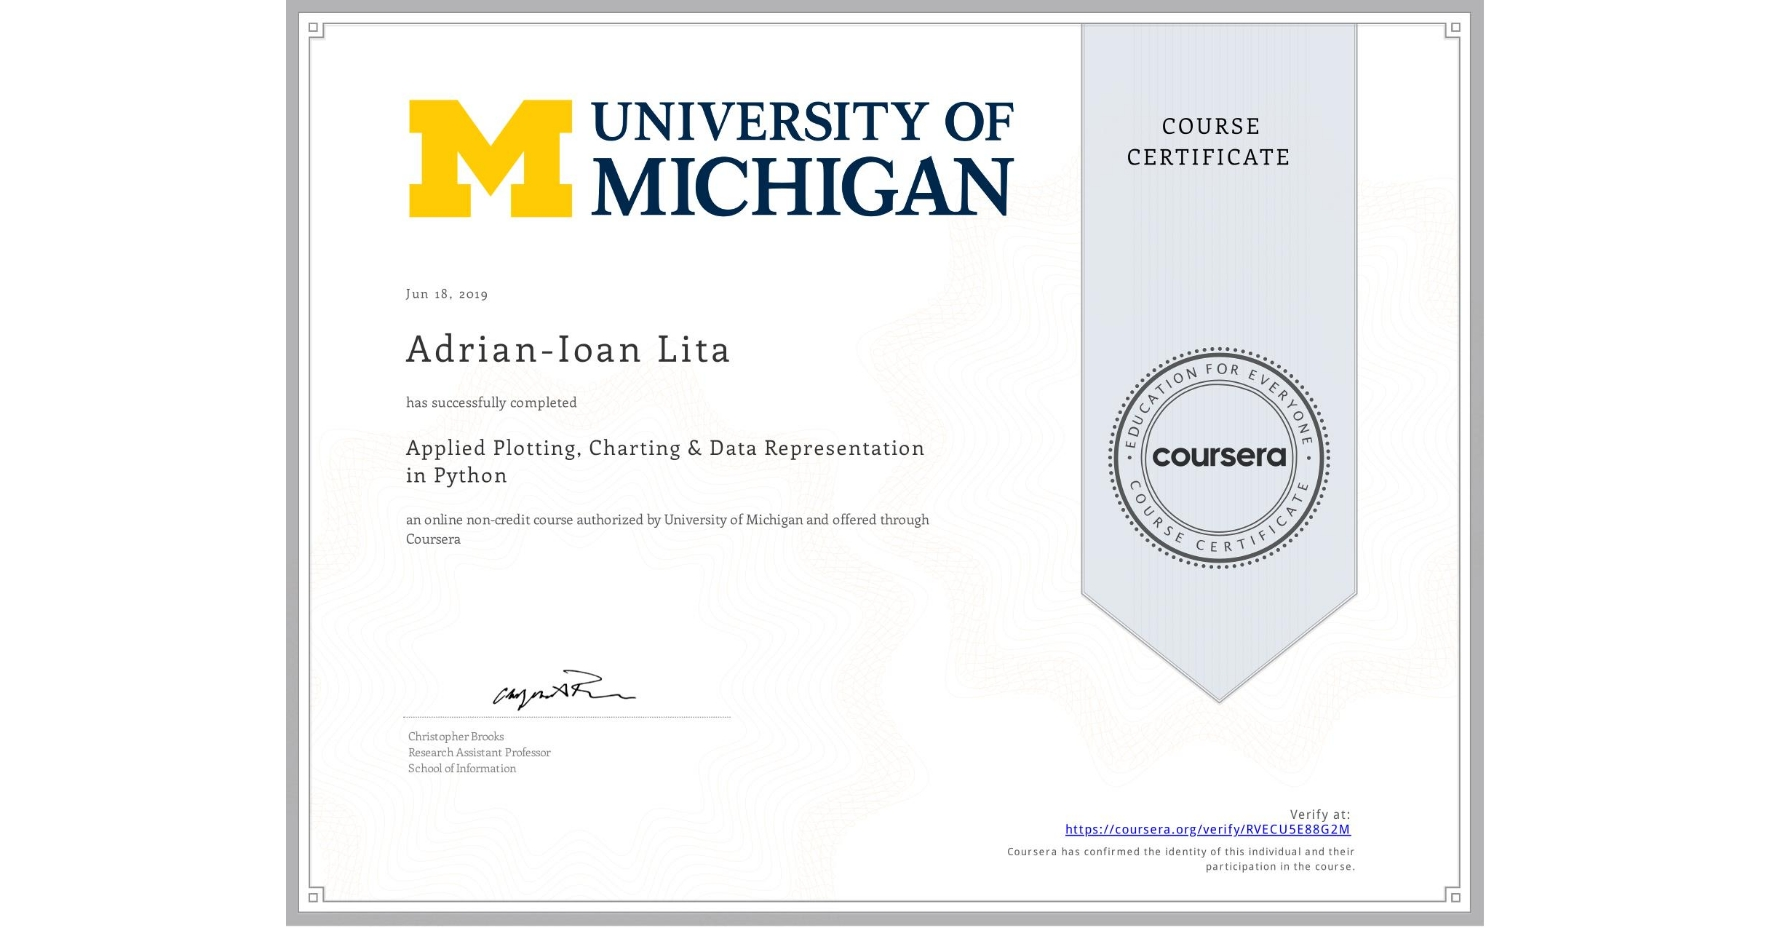 View certificate for Adrian-Ioan Lita, Applied Plotting, Charting & Data Representation in Python, an online non-credit course authorized by University of Michigan and offered through Coursera